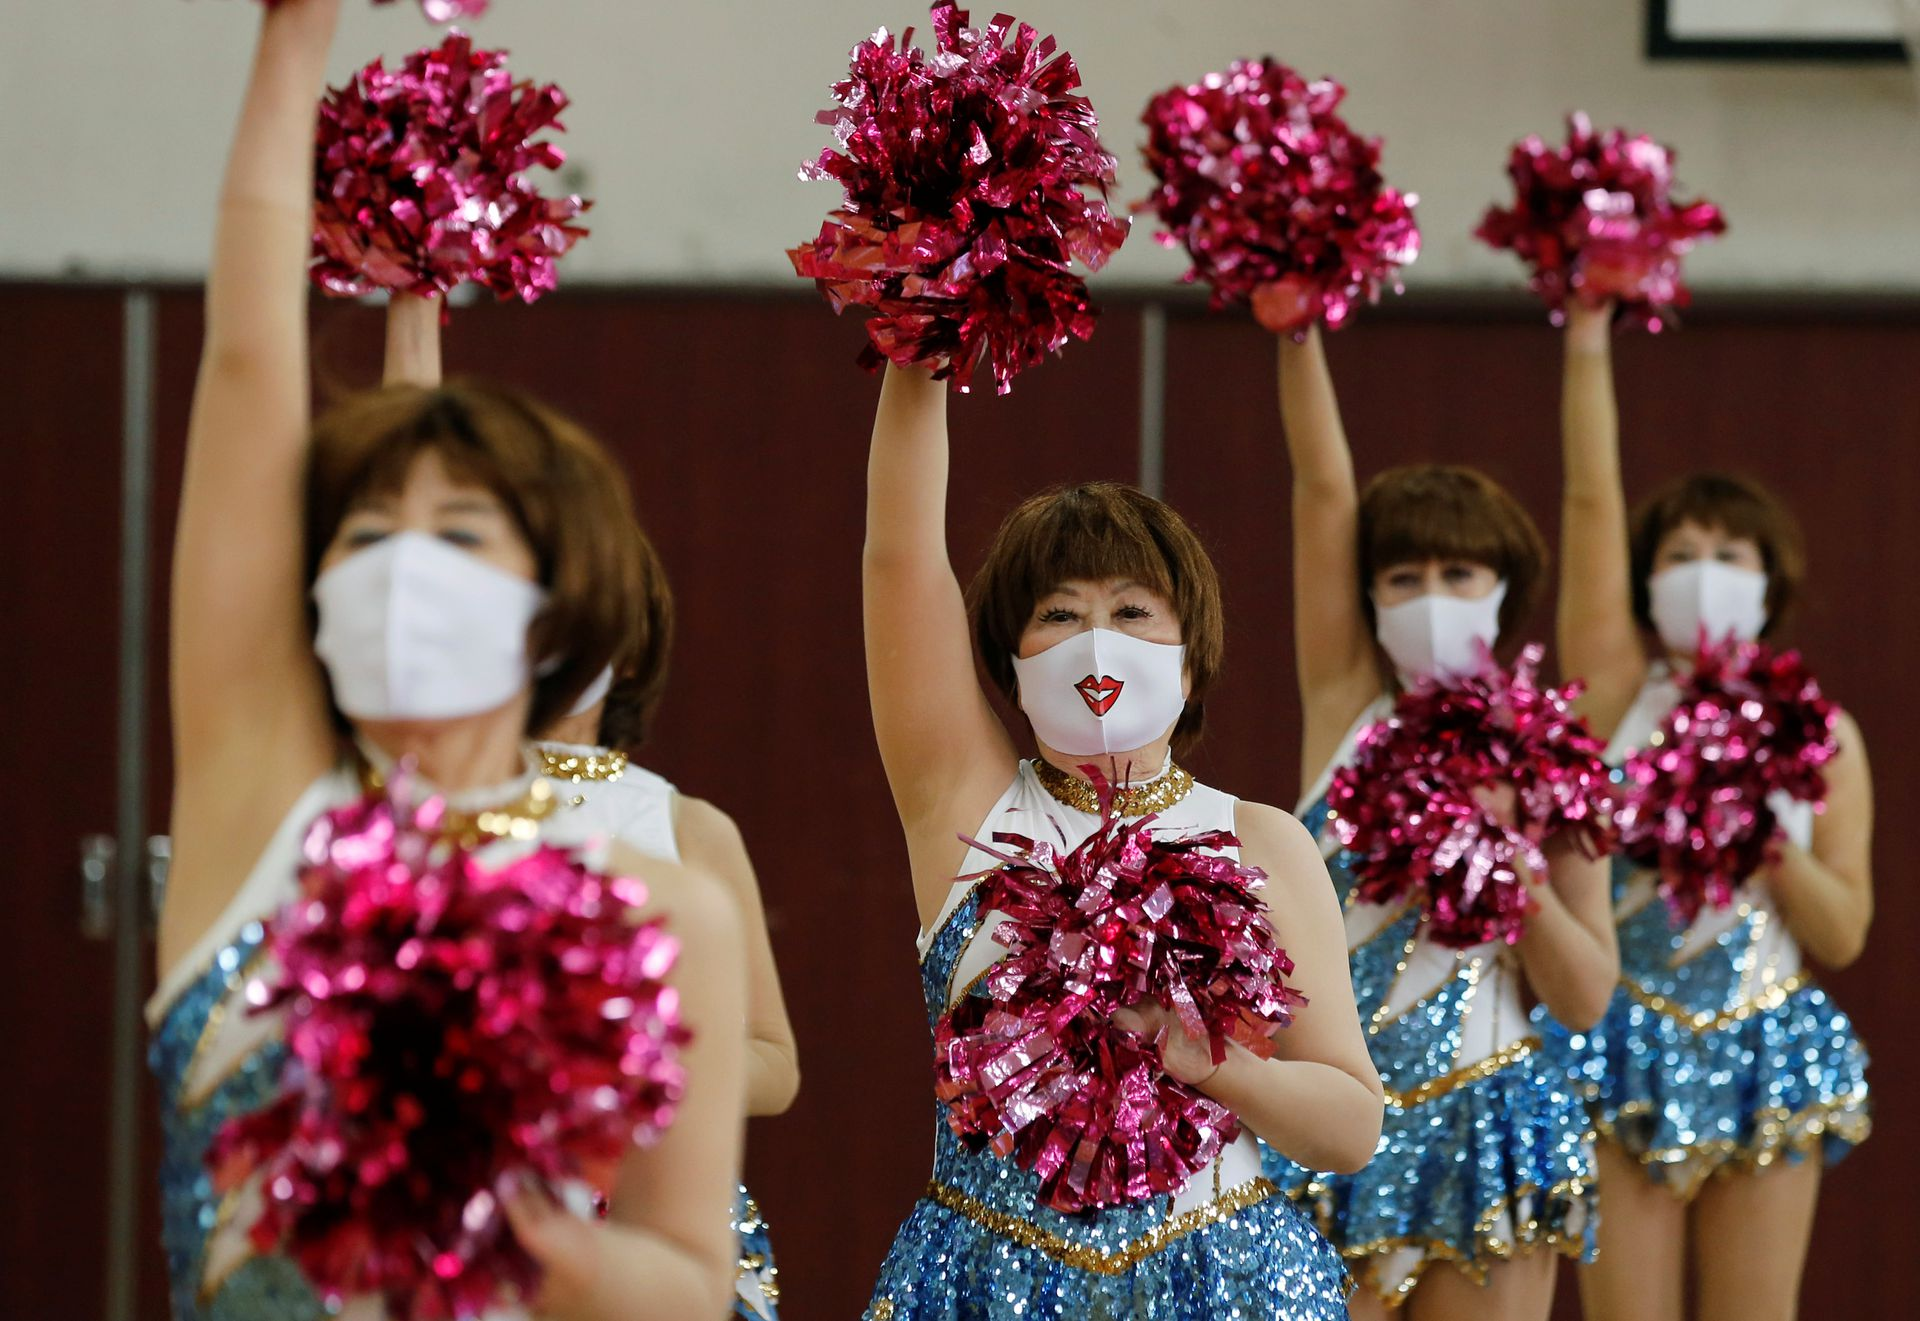 Fumie Takino, 89, founder of a senior cheer squad called Japan Pom Pom, and other Japan Pom Pom members, perform a dance routine while filming an online performance in Tokyo, Japan, April 12, 2021. Photo: Reuters